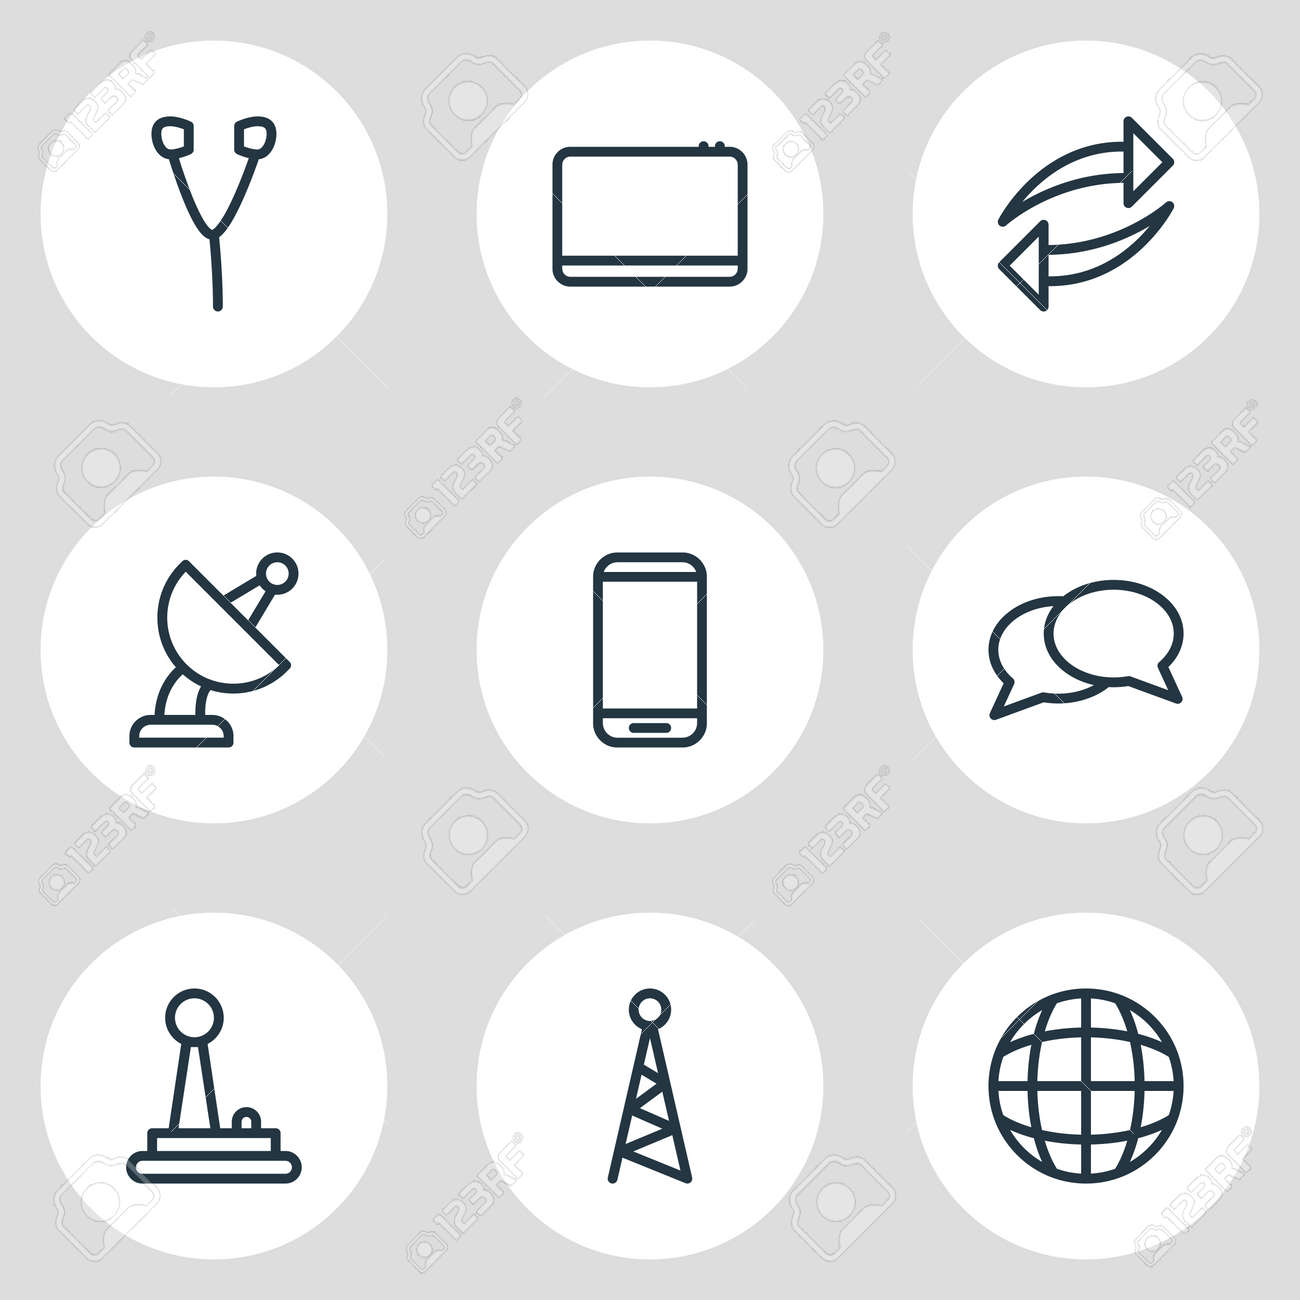 illustration of 9 media icons line style. Editable set of smartphone, joystick, tablet and other icon elements. - 157462698